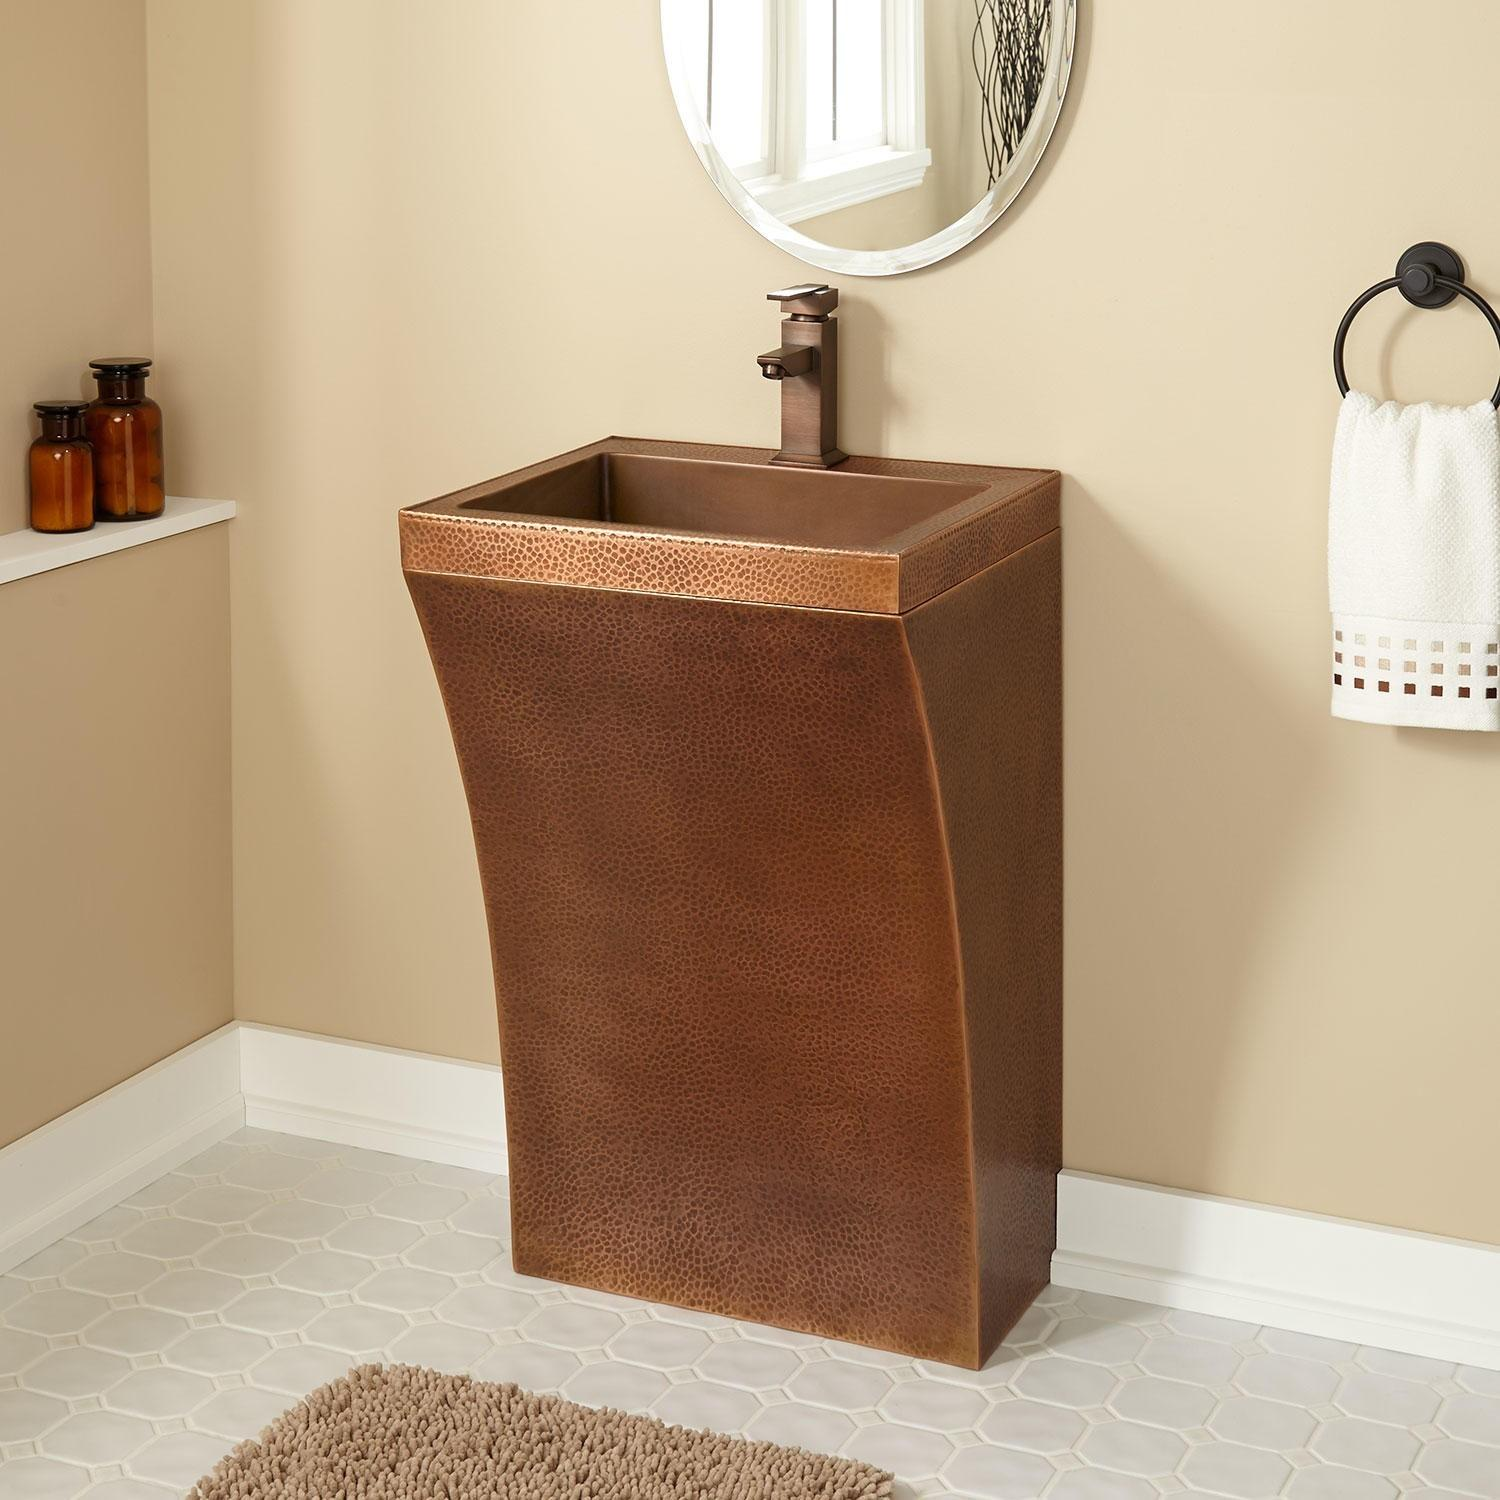 Curved Hammered Copper Pedestal Sink Sinks